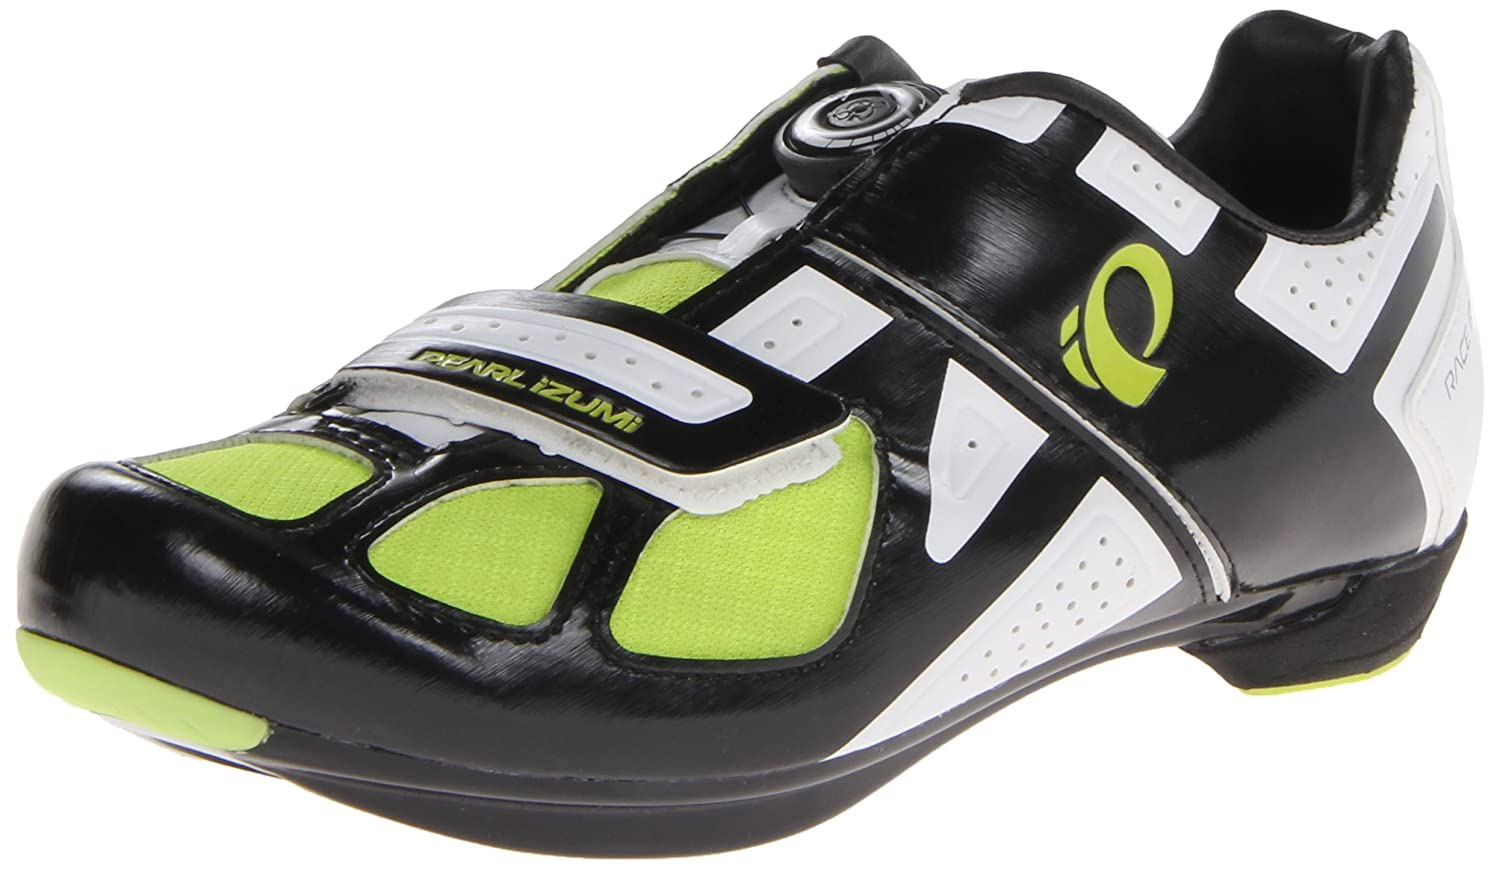 PEARL IZUMI PI Shoes Race Road III Black/White 42.0: Amazon.es: Deportes y aire libre